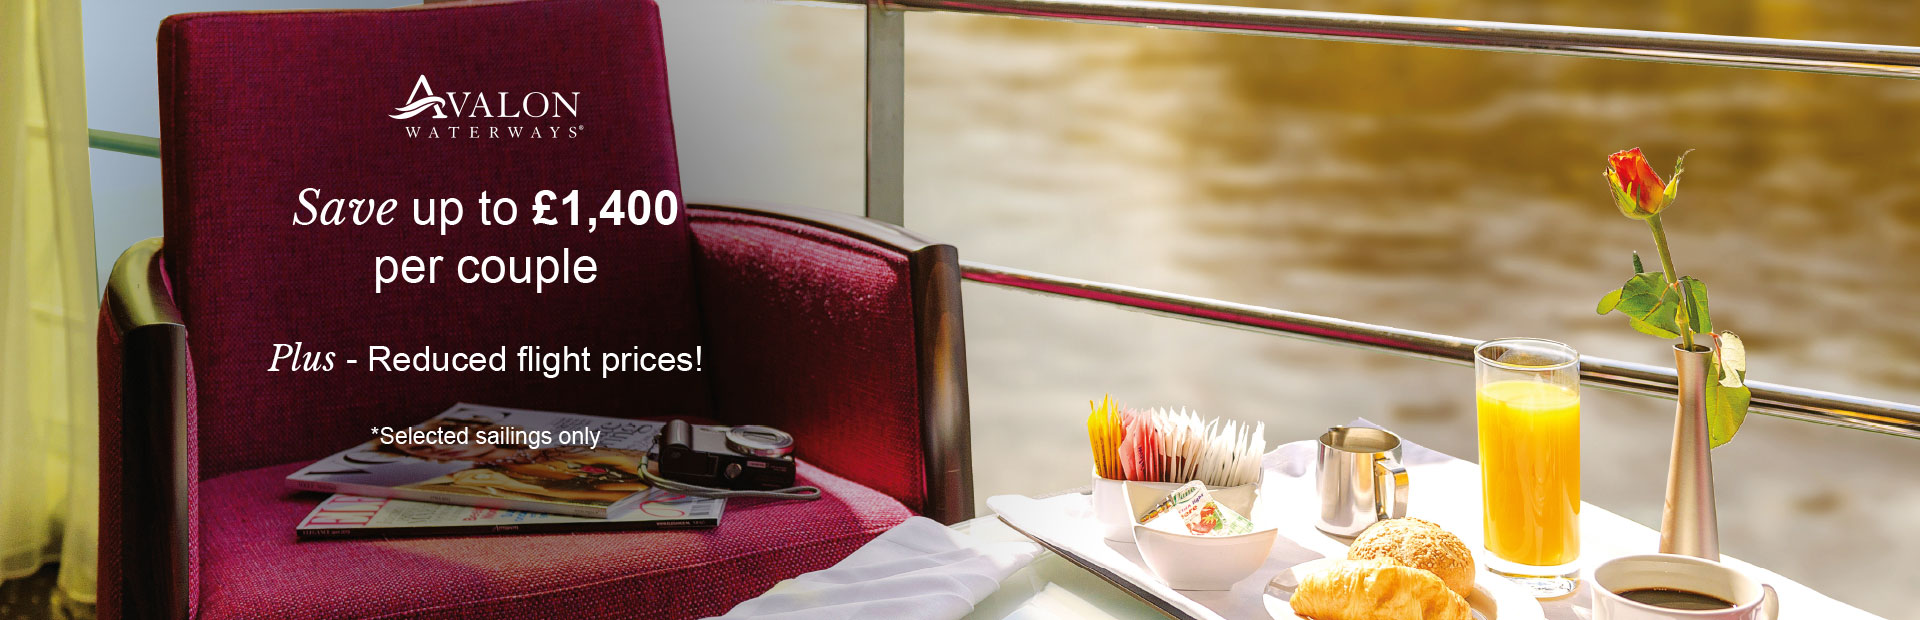 AvalonWaterways - Promotion